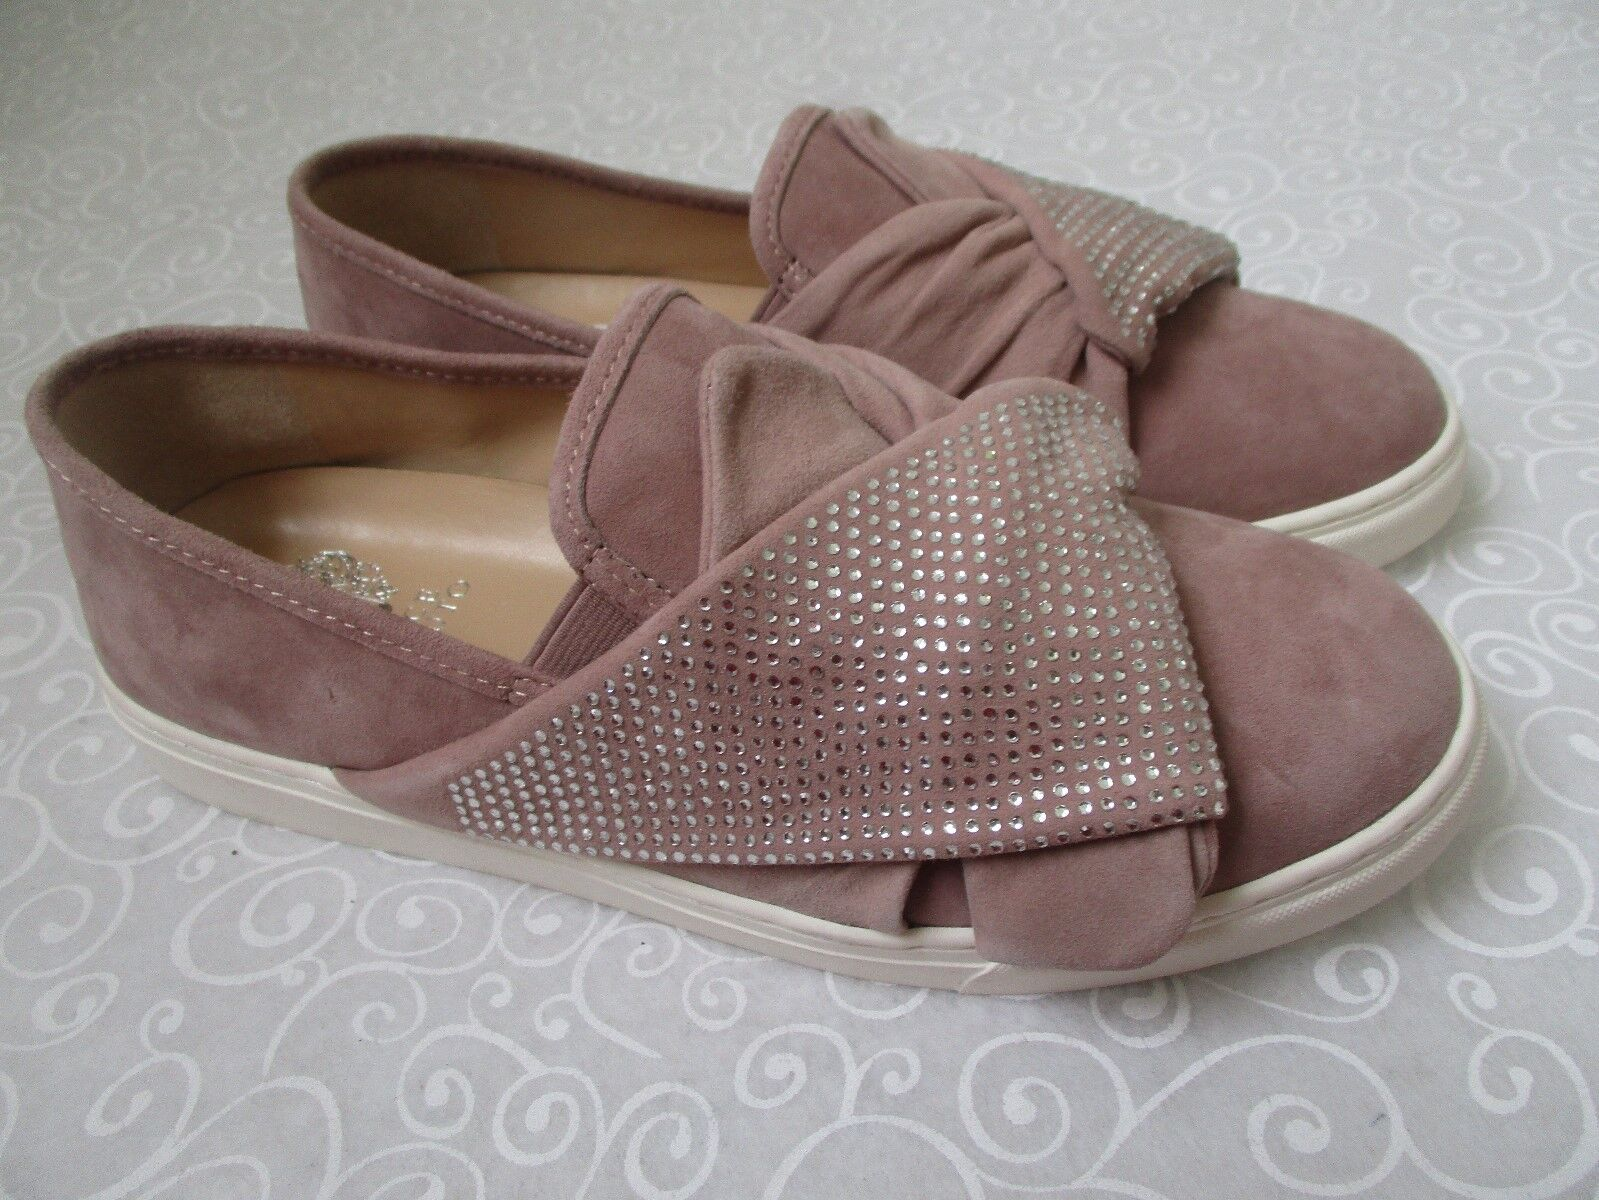 VINCE CAMUTO BARITA ROSE QUARTZ SUEDE LEATHER chaussures Taille 11 M - NEW